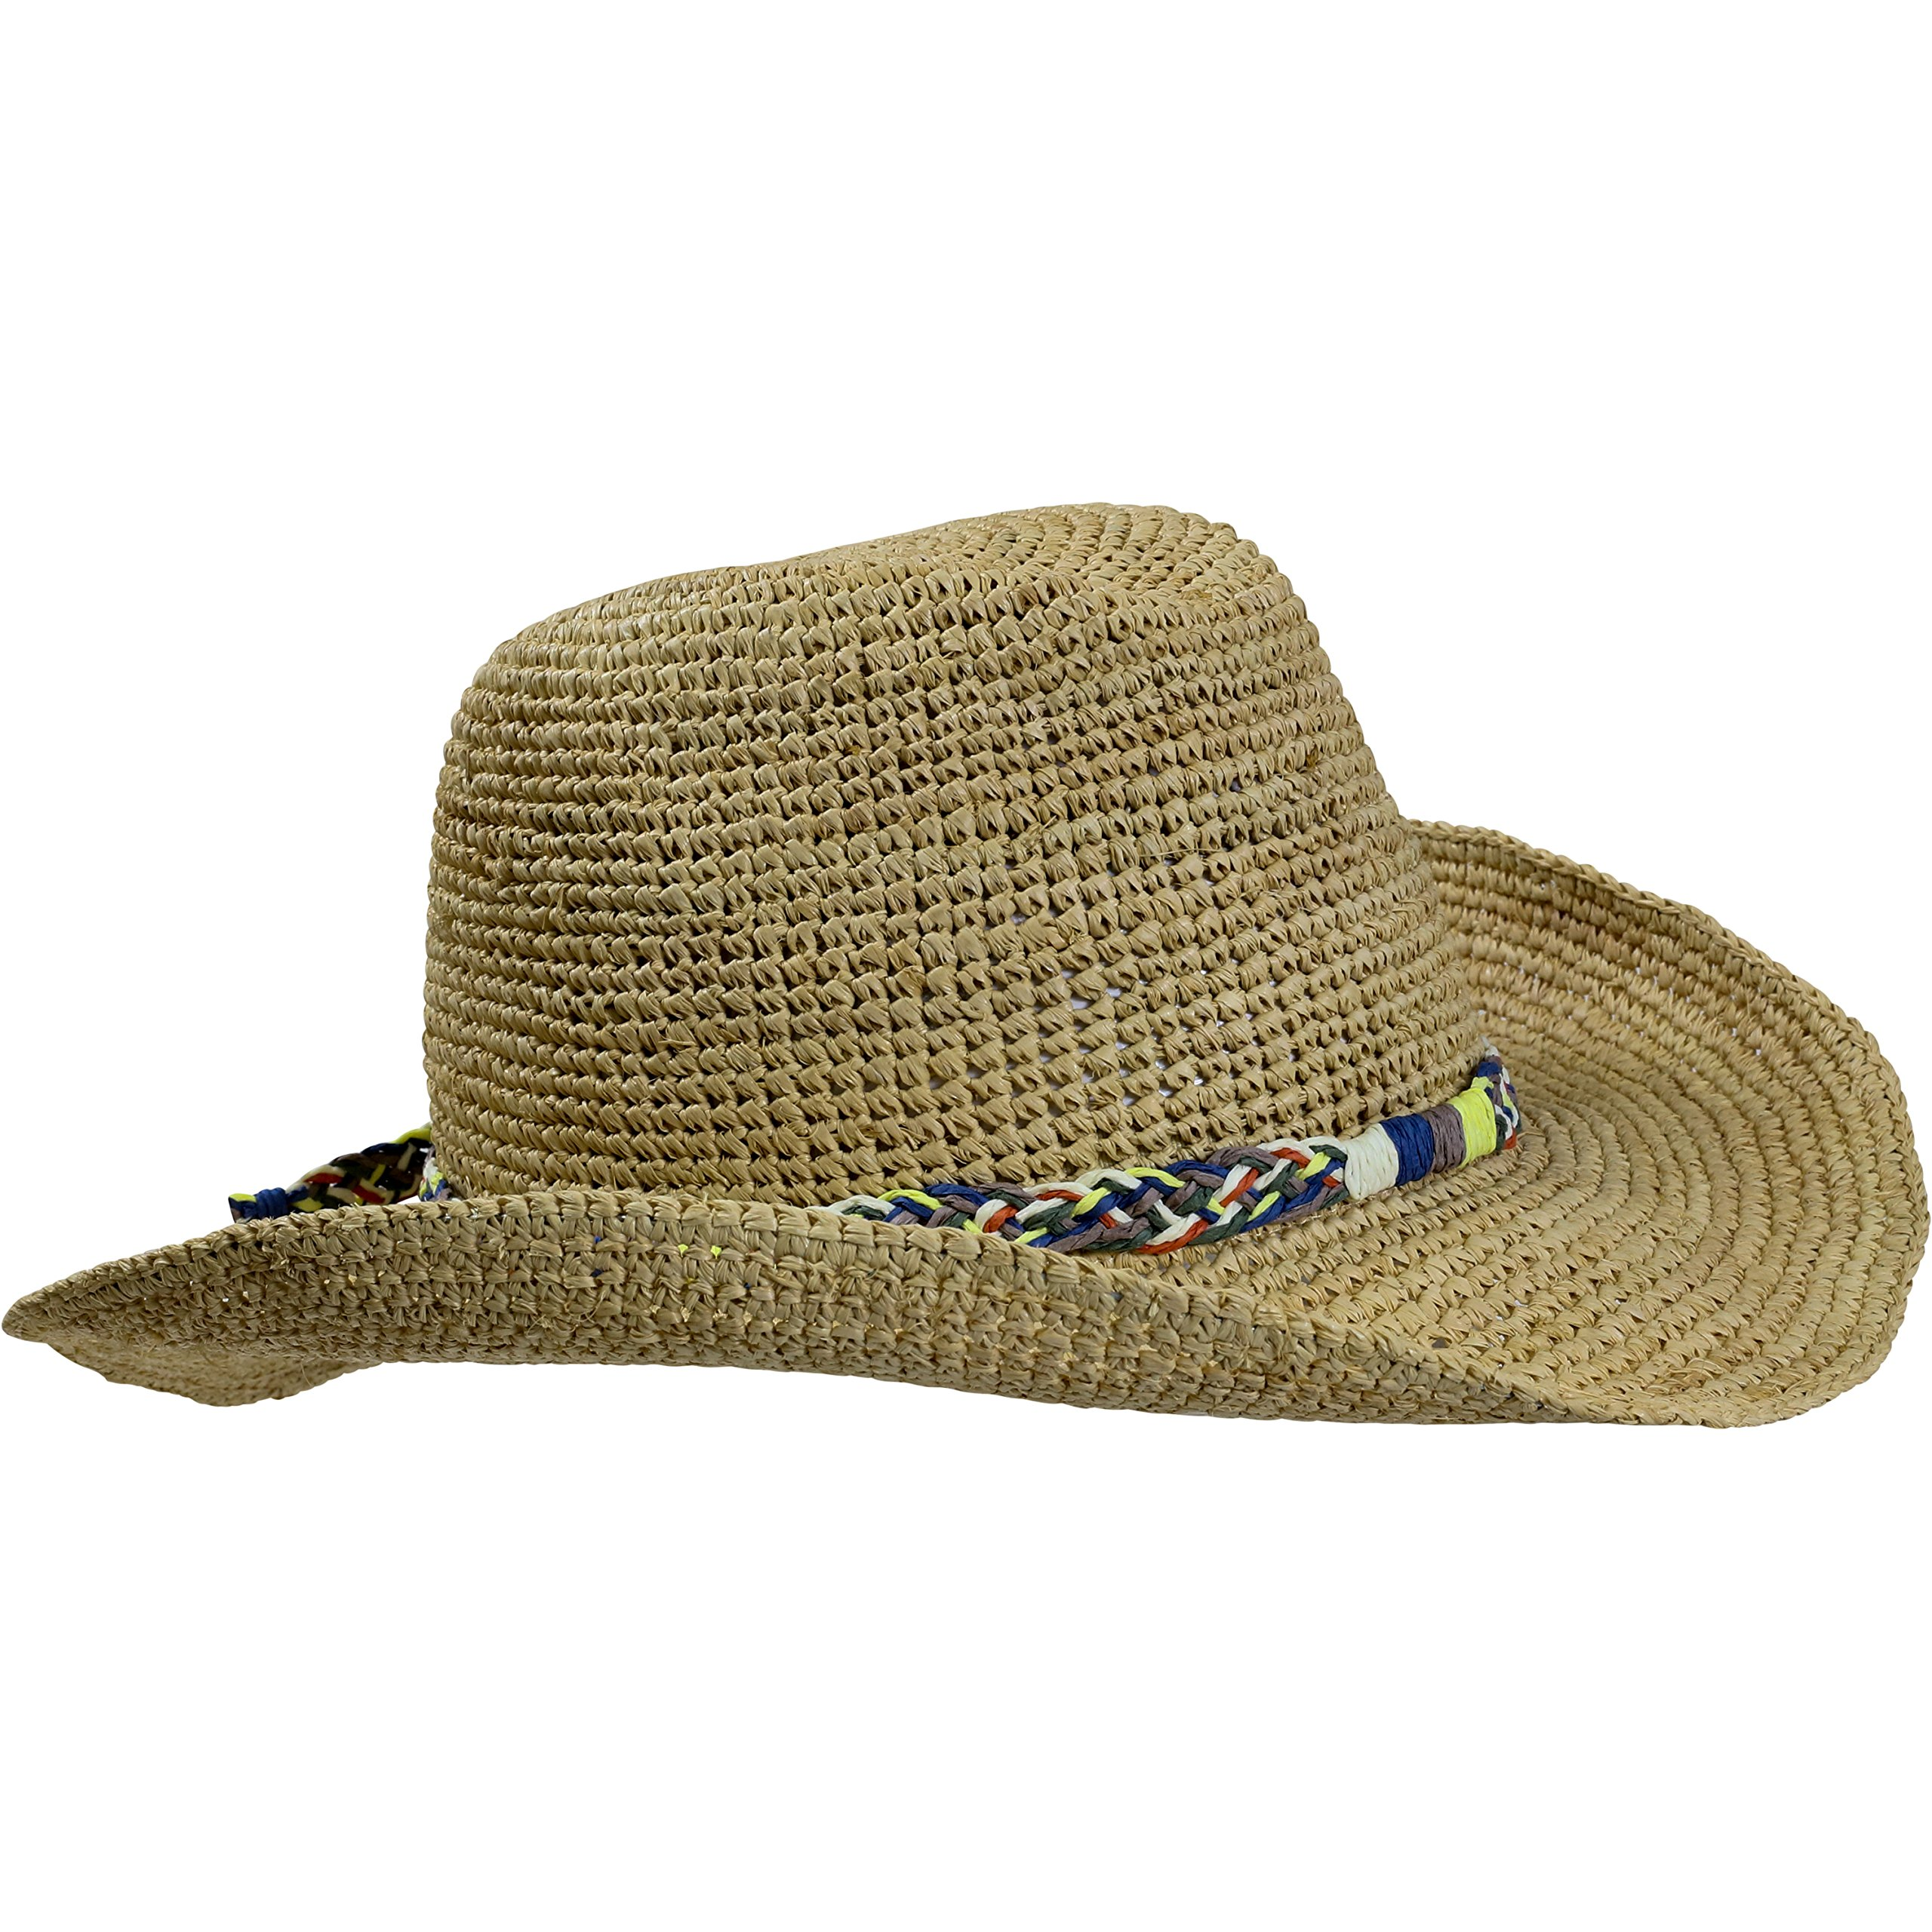 Turtle Fur Straw Beach Cowboy Wired Brim Summer Sun Hat Vermont Collection Sun Style, Coastal